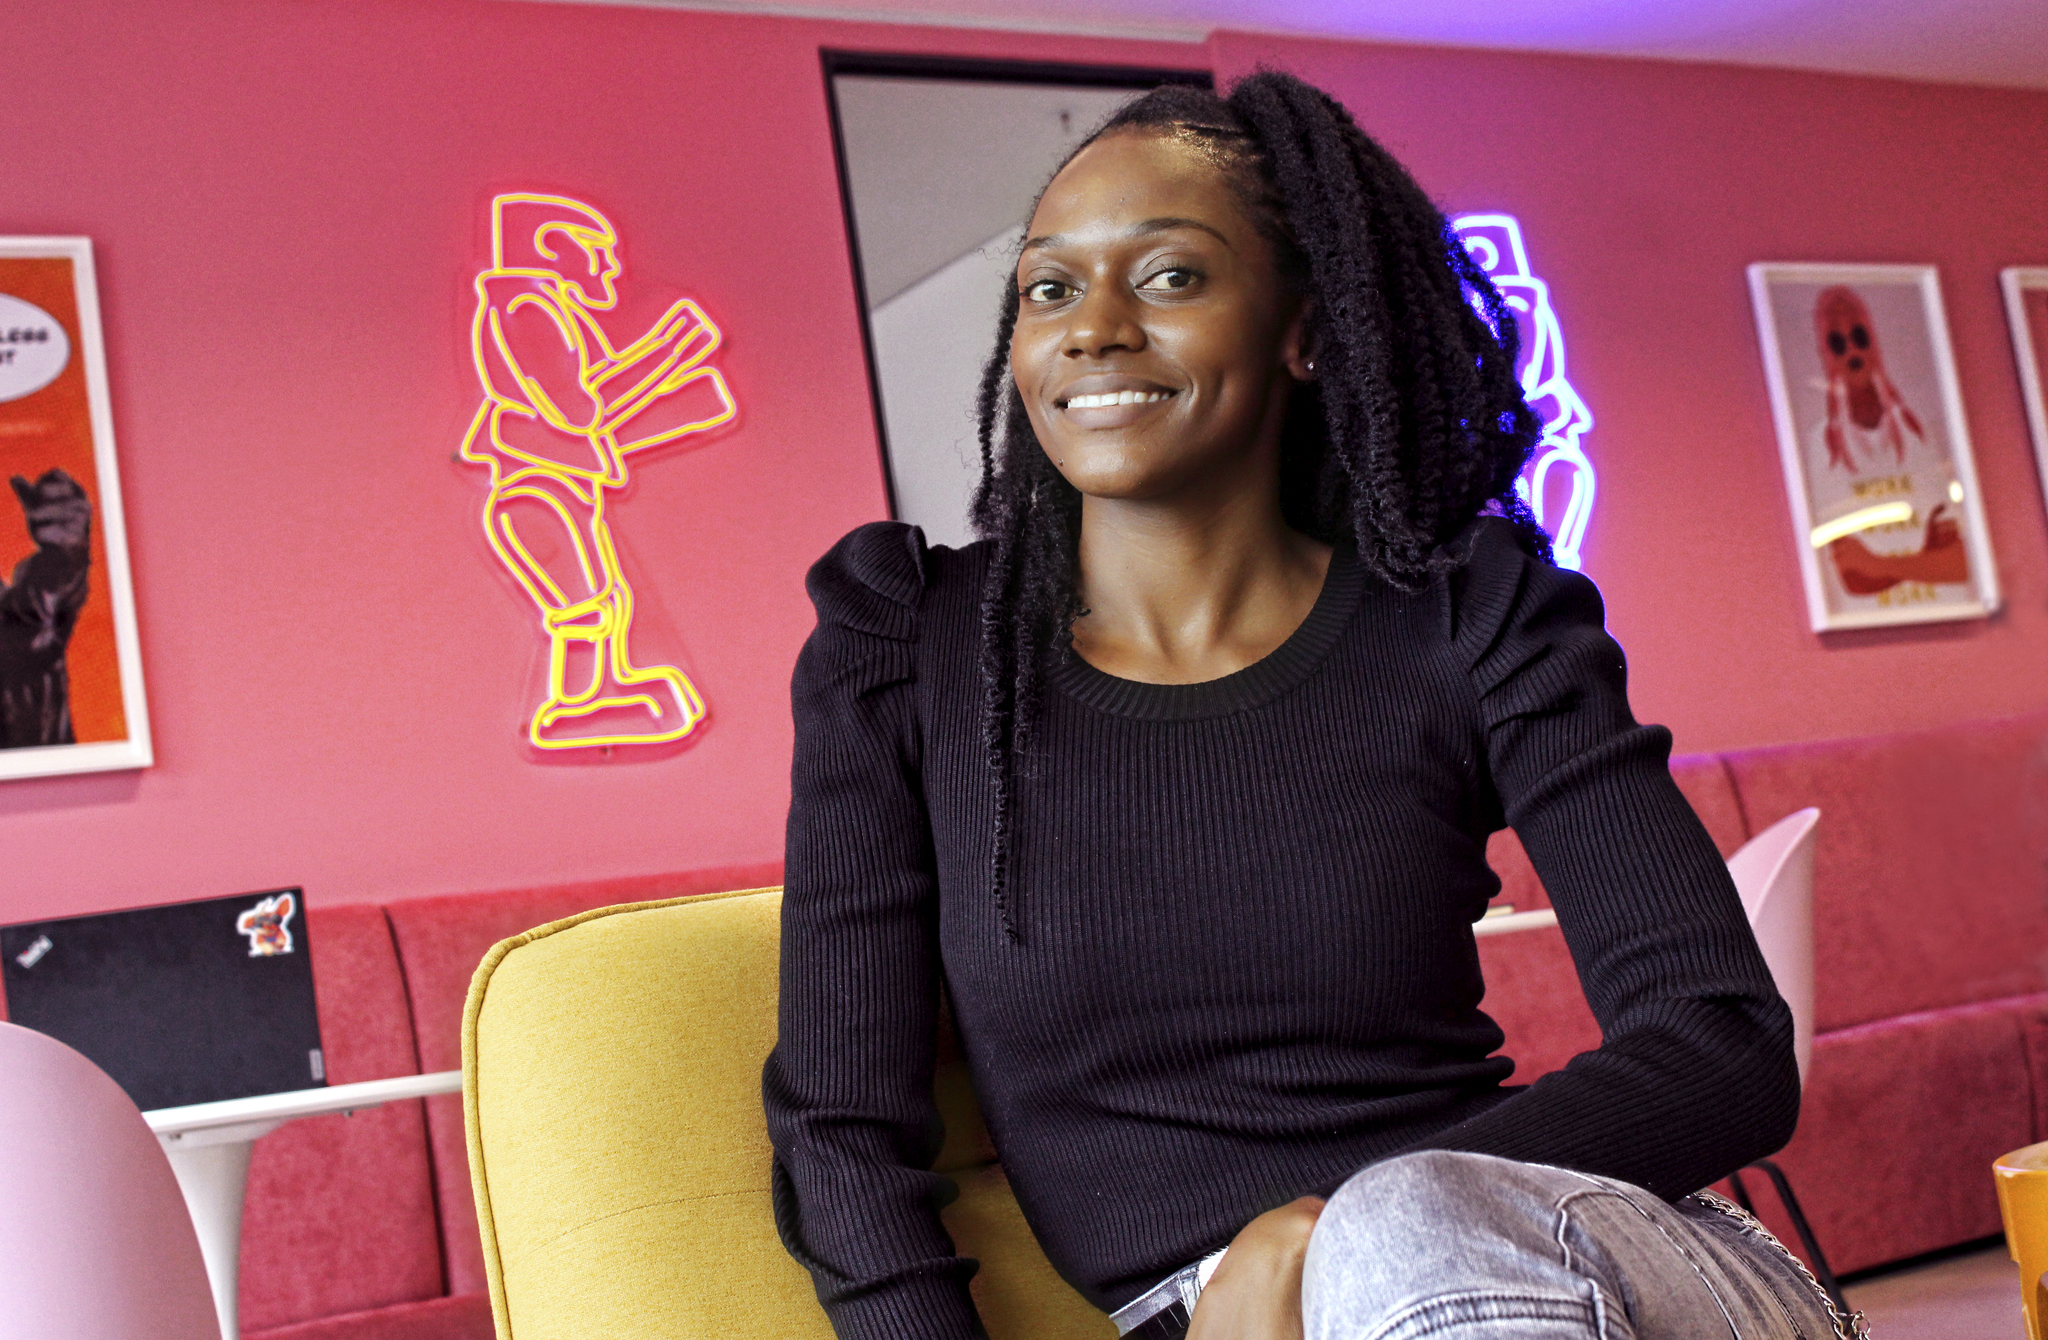 Meet the #iKTribe: Beauty, Brains and Code with Pauline Chigumo